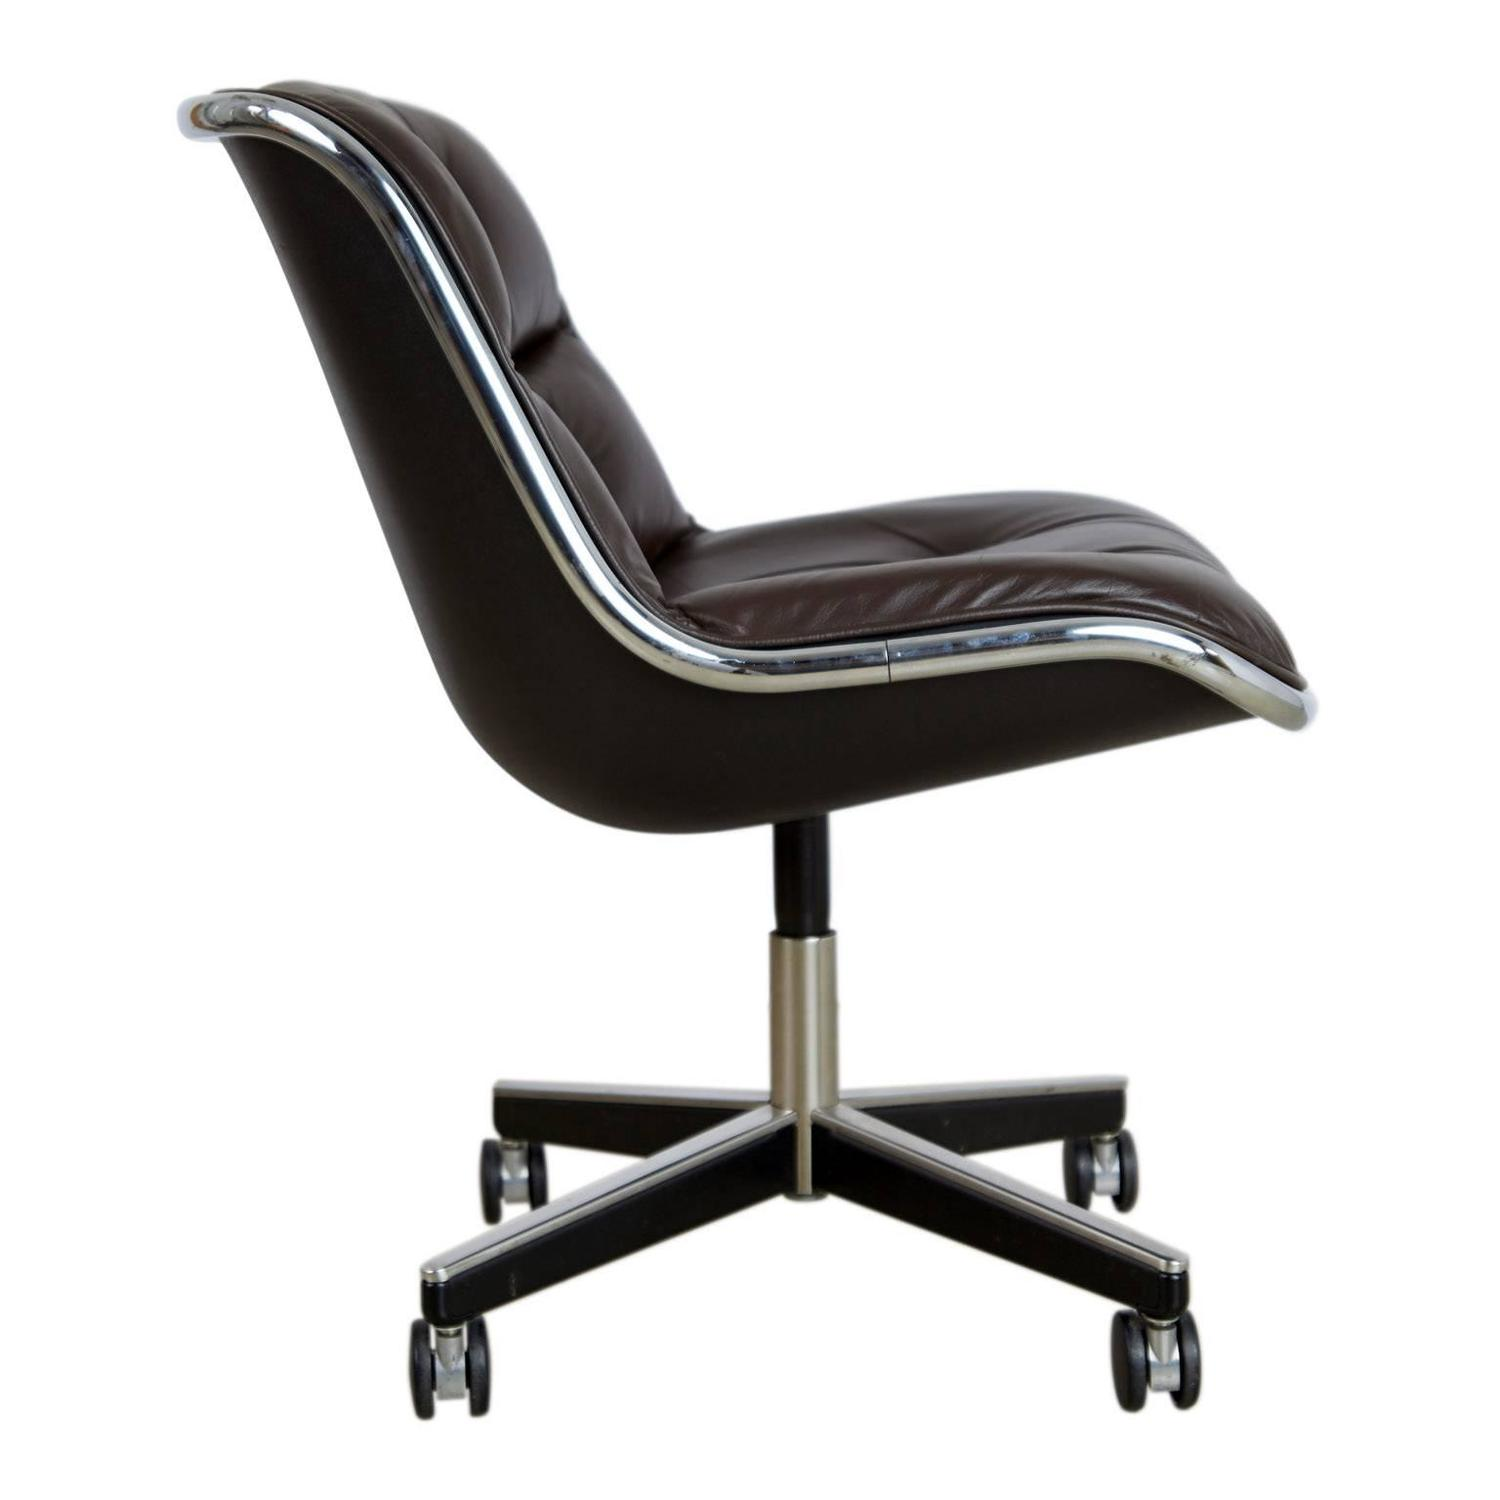 Charles Pollock for Knoll Dark Brown Leather Executive Desk Chair